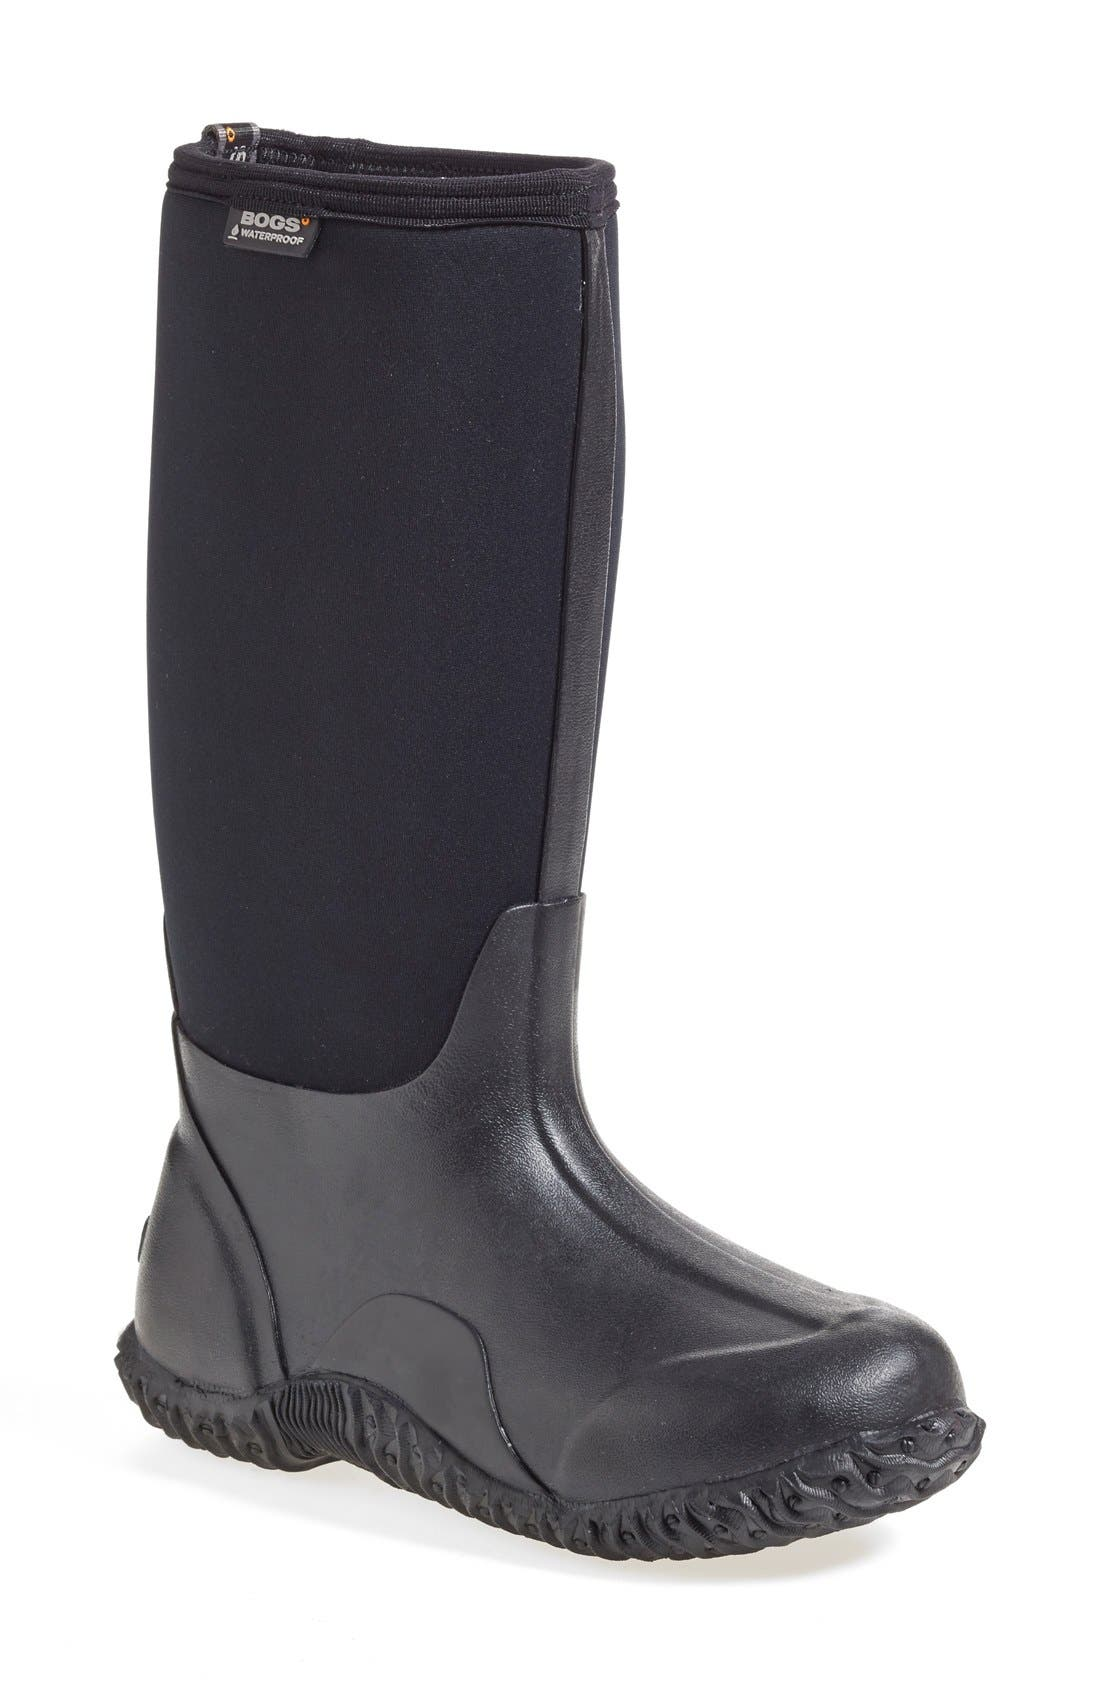 BOGS 'Classic' High Waterproof Snow Boot